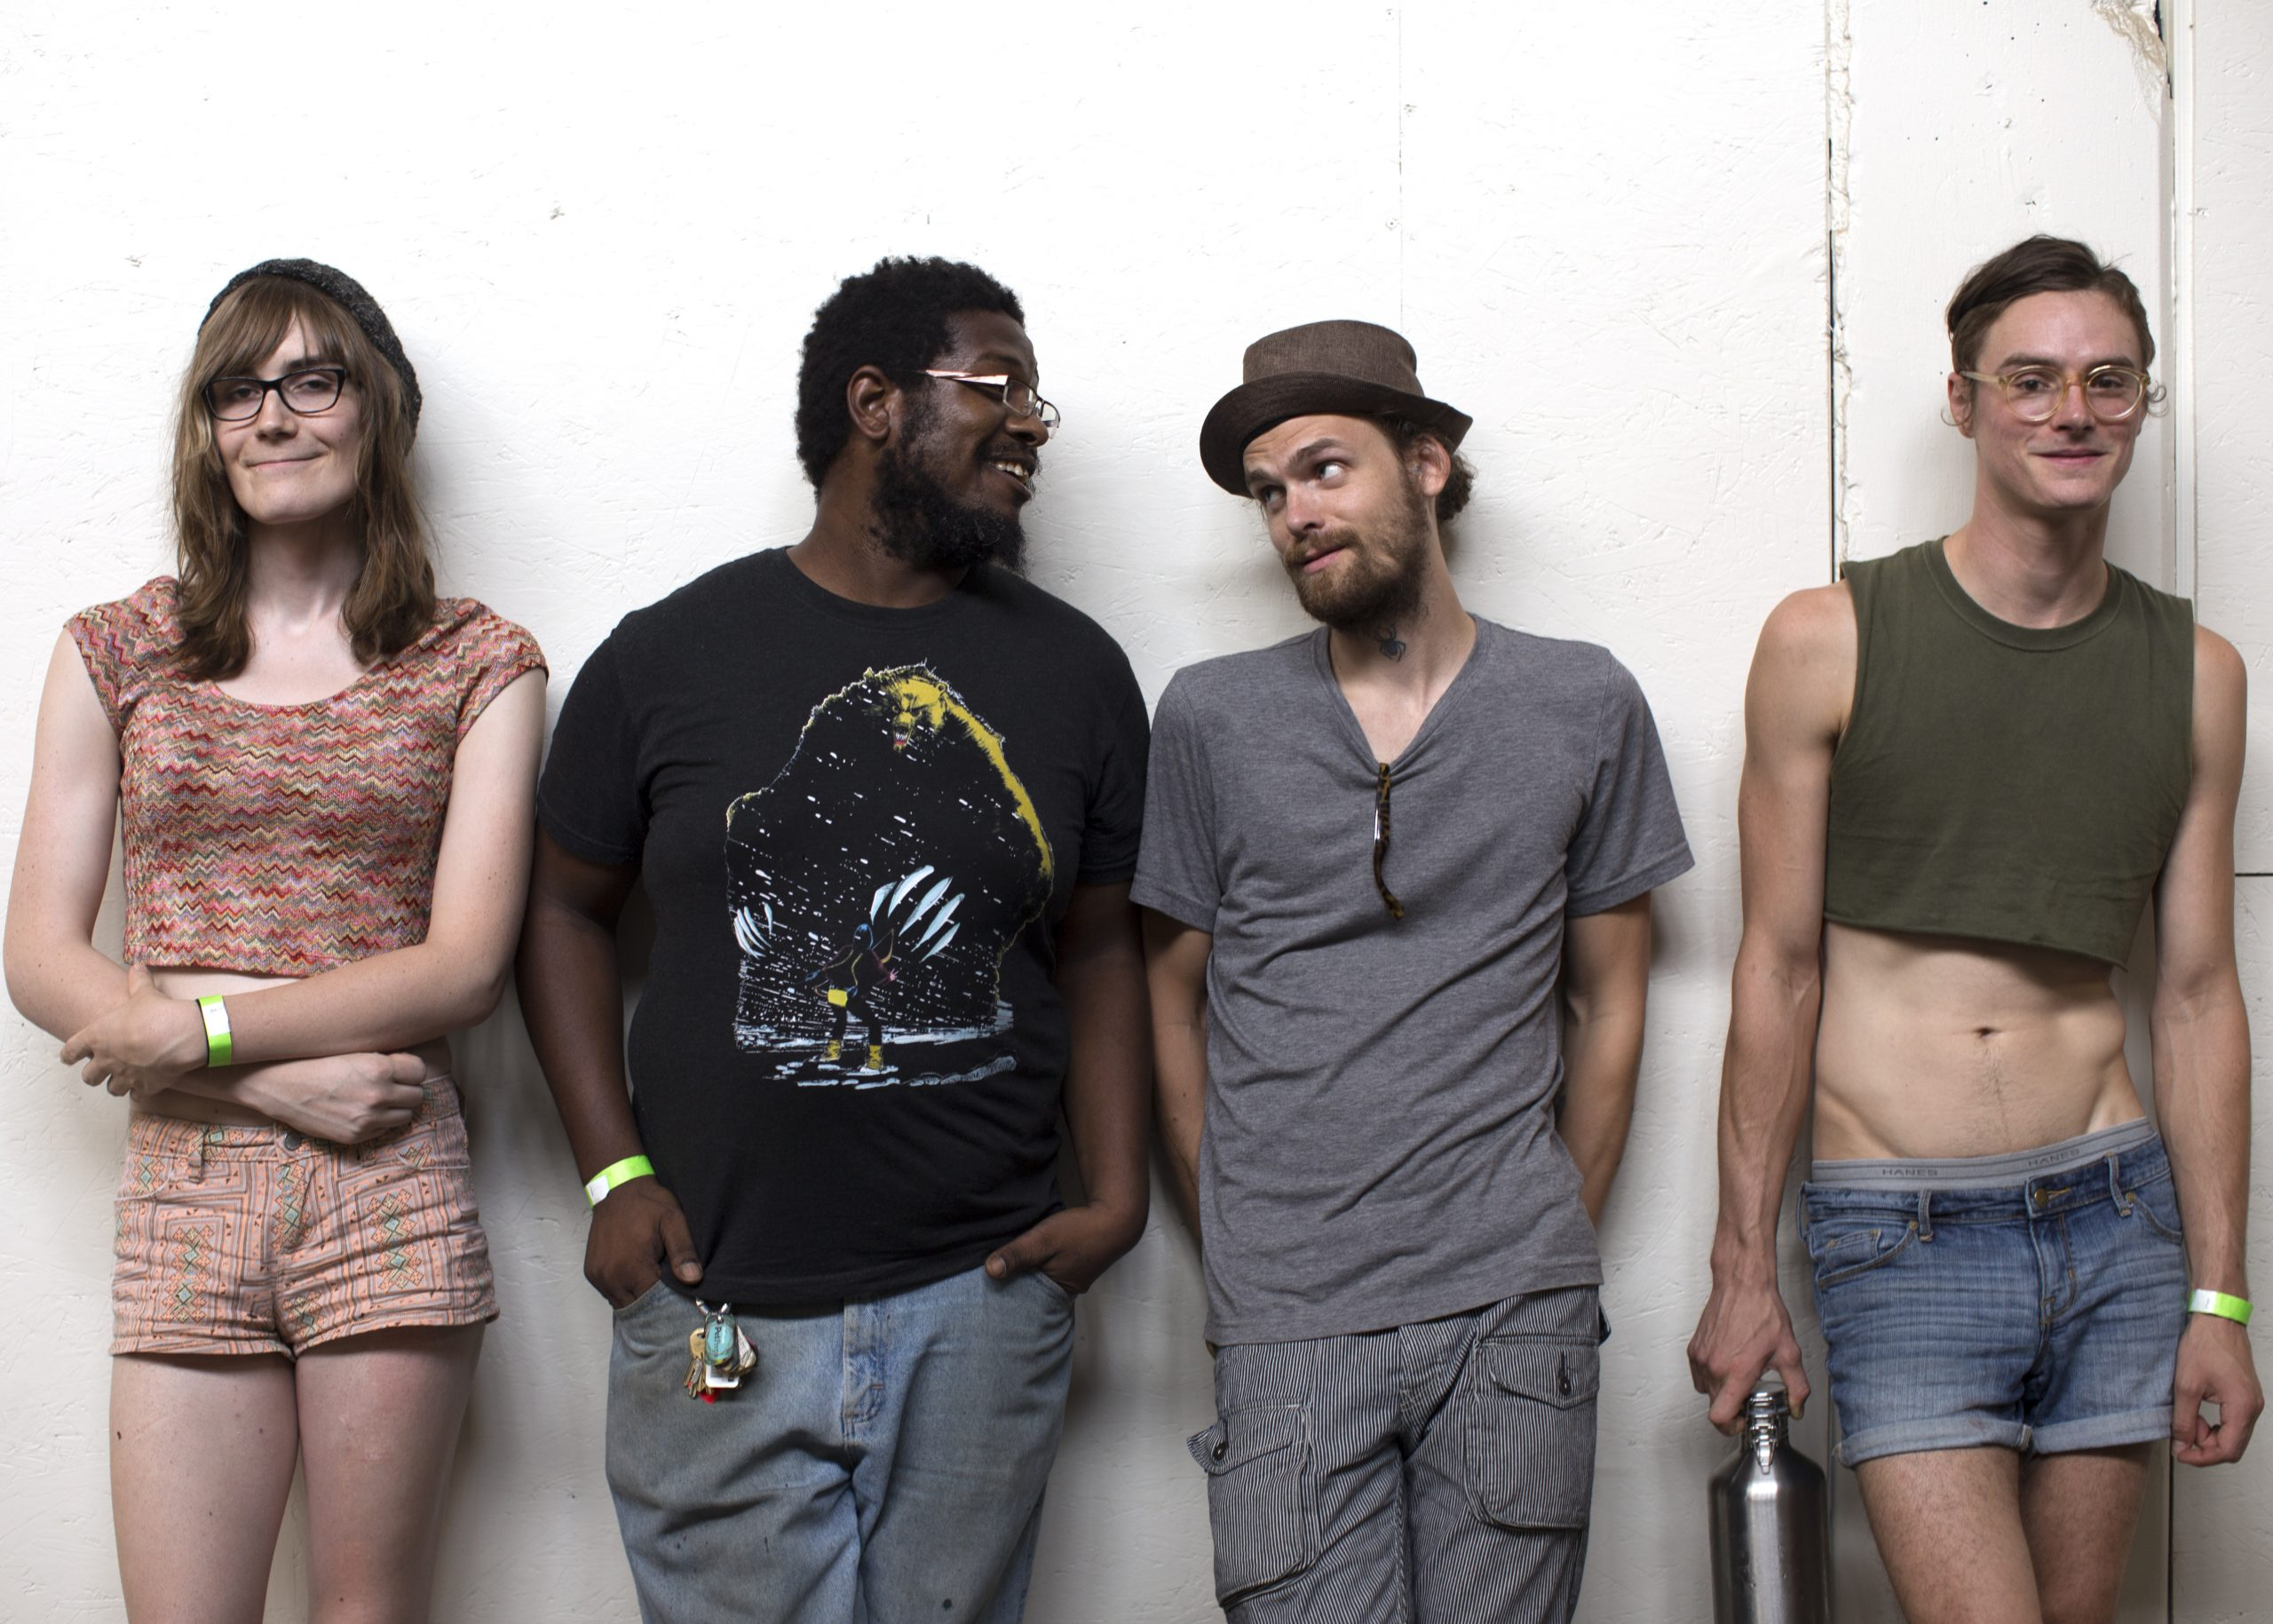 Marvin the Robot: Brooklyn Ludlow, Miles Curtiss, Darren, and Miah Brightland